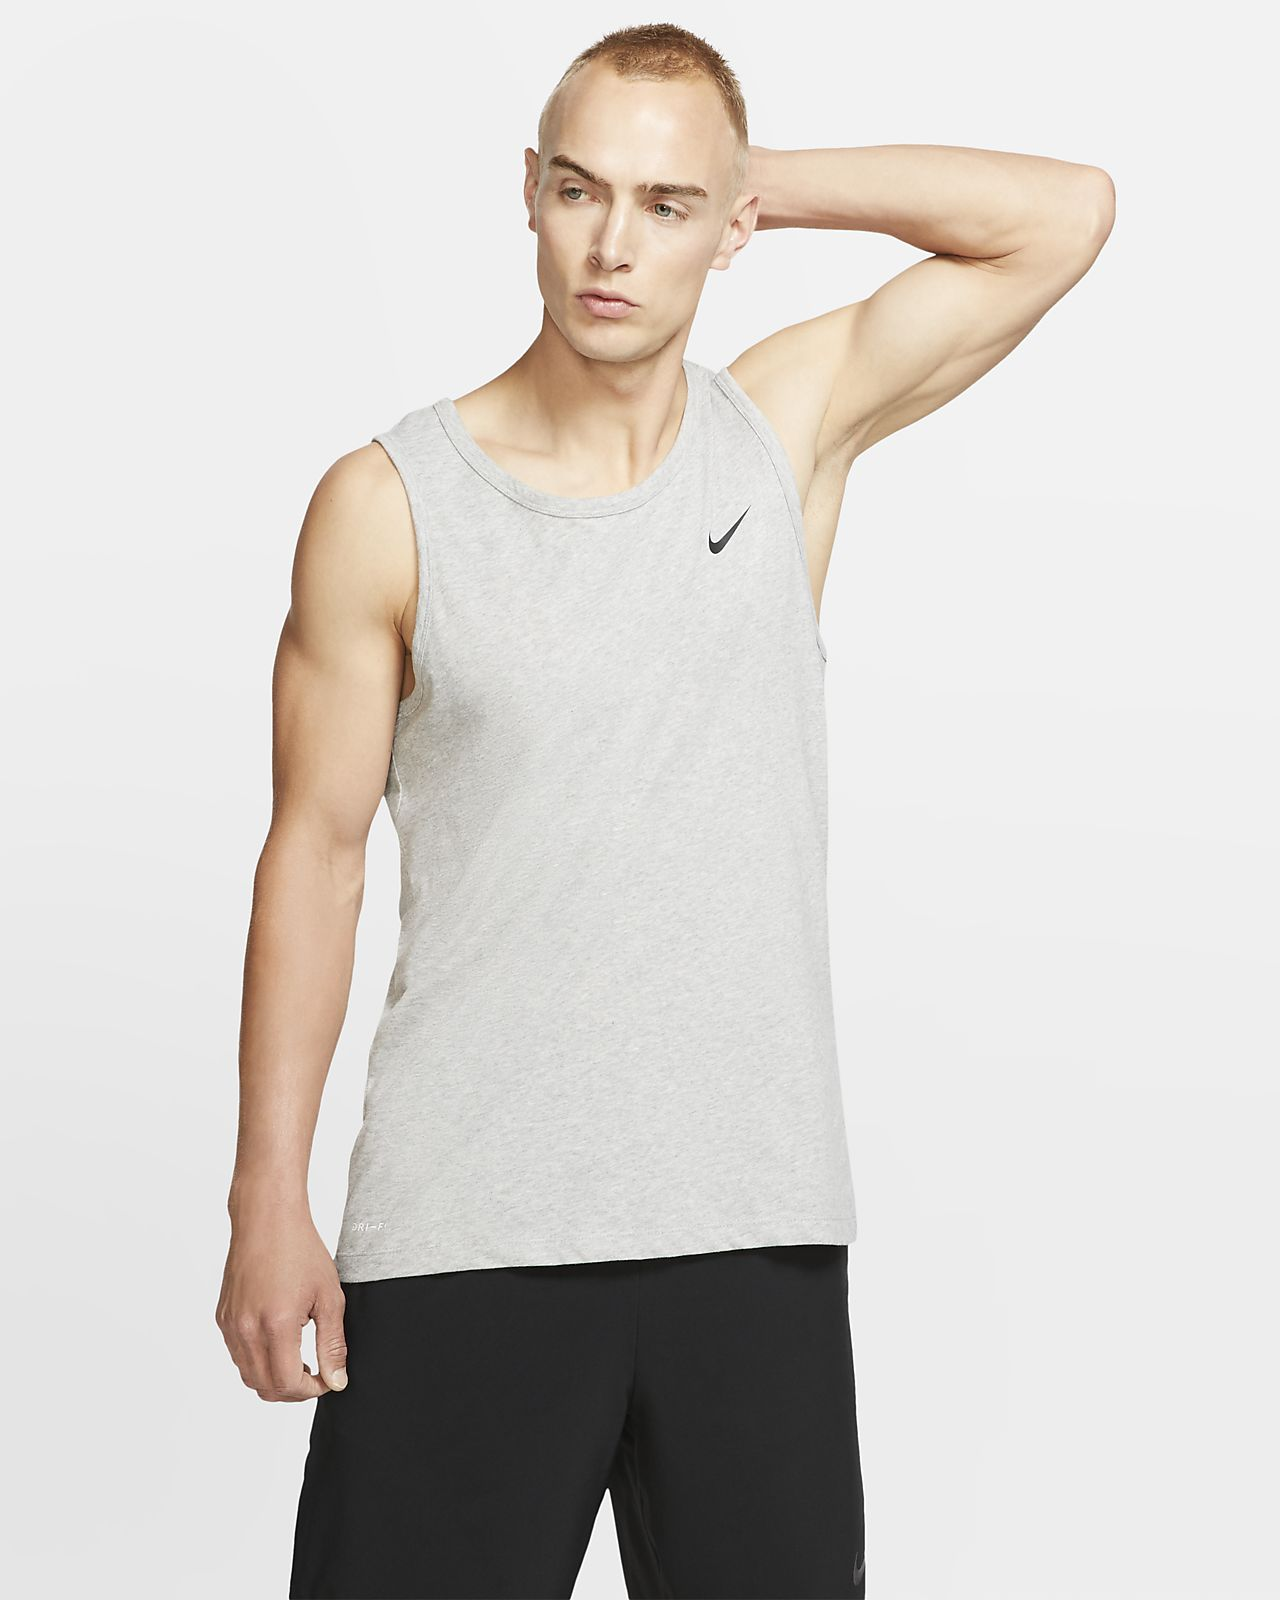 Nike Dri-FIT Men's Training Tank